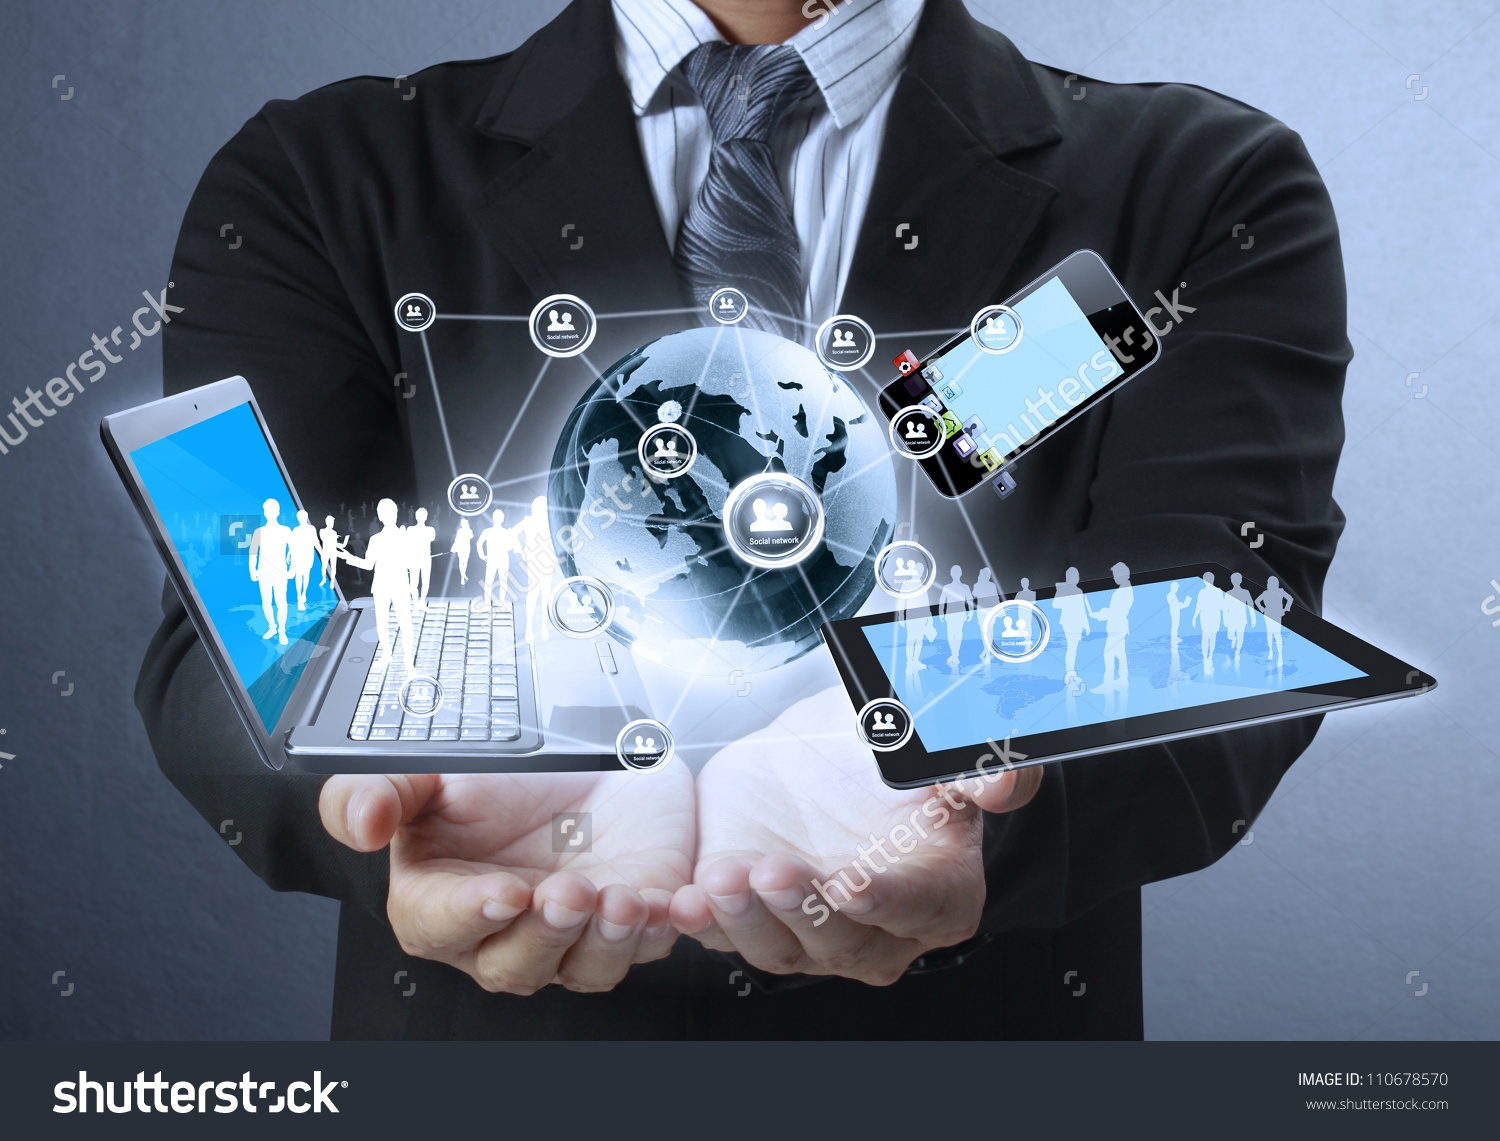 Internet of Things in the hands of a business person